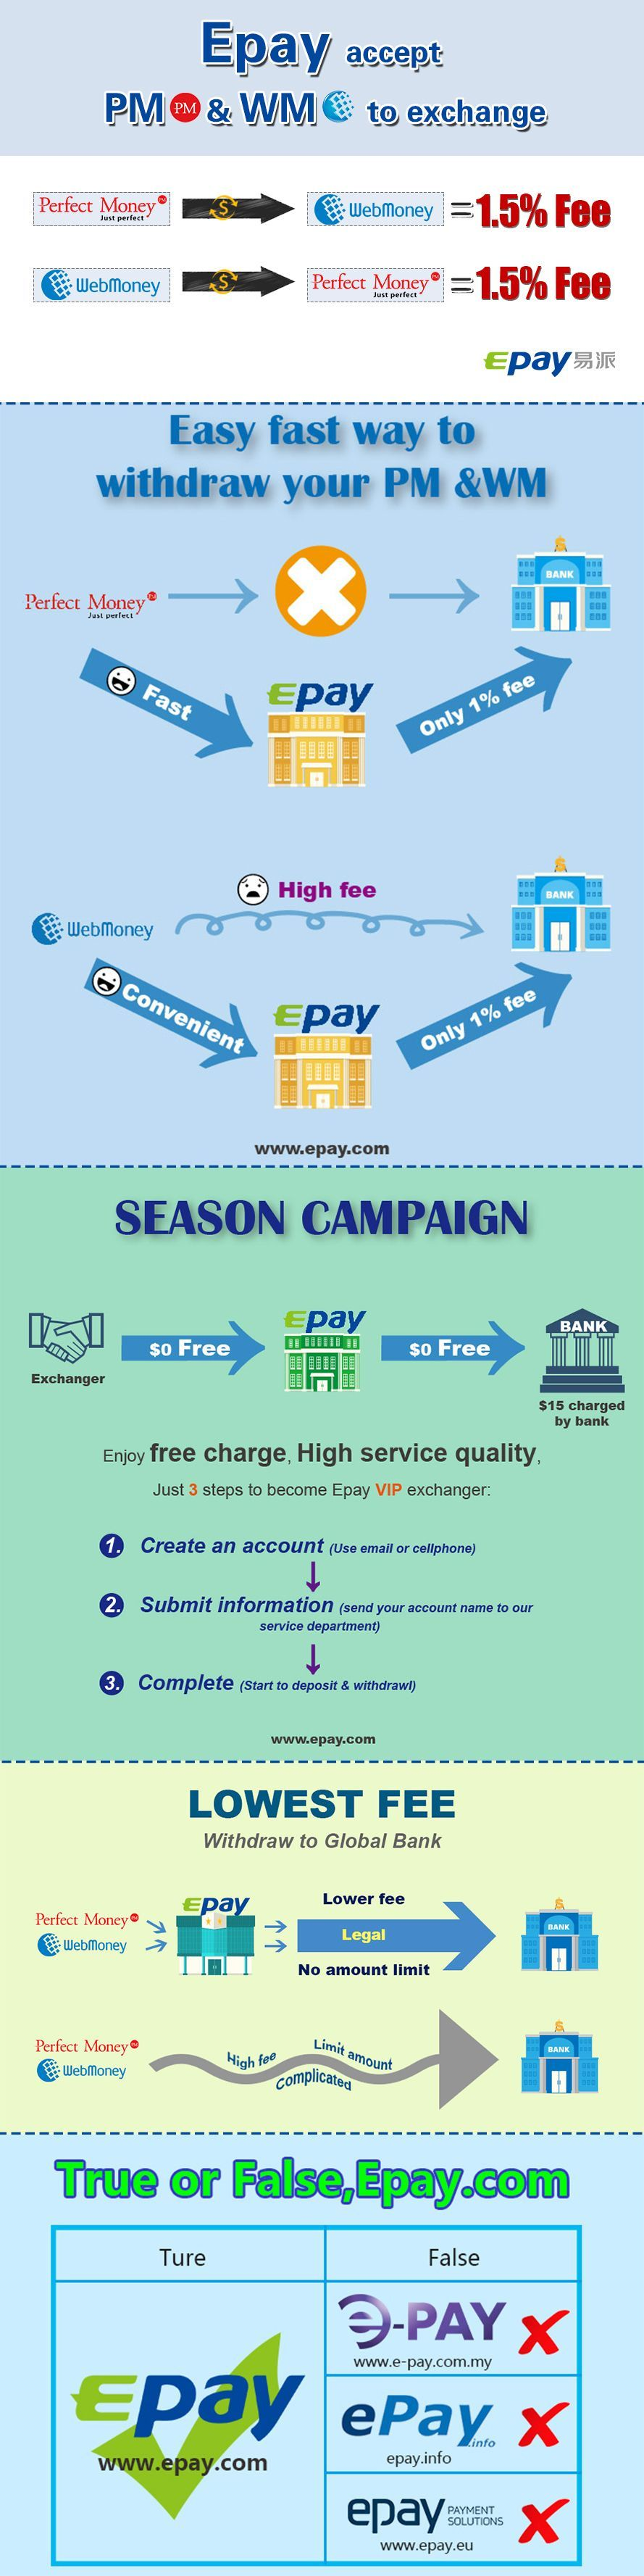 Epay.com-Make online payment, deposit withdrawal send and receive ...